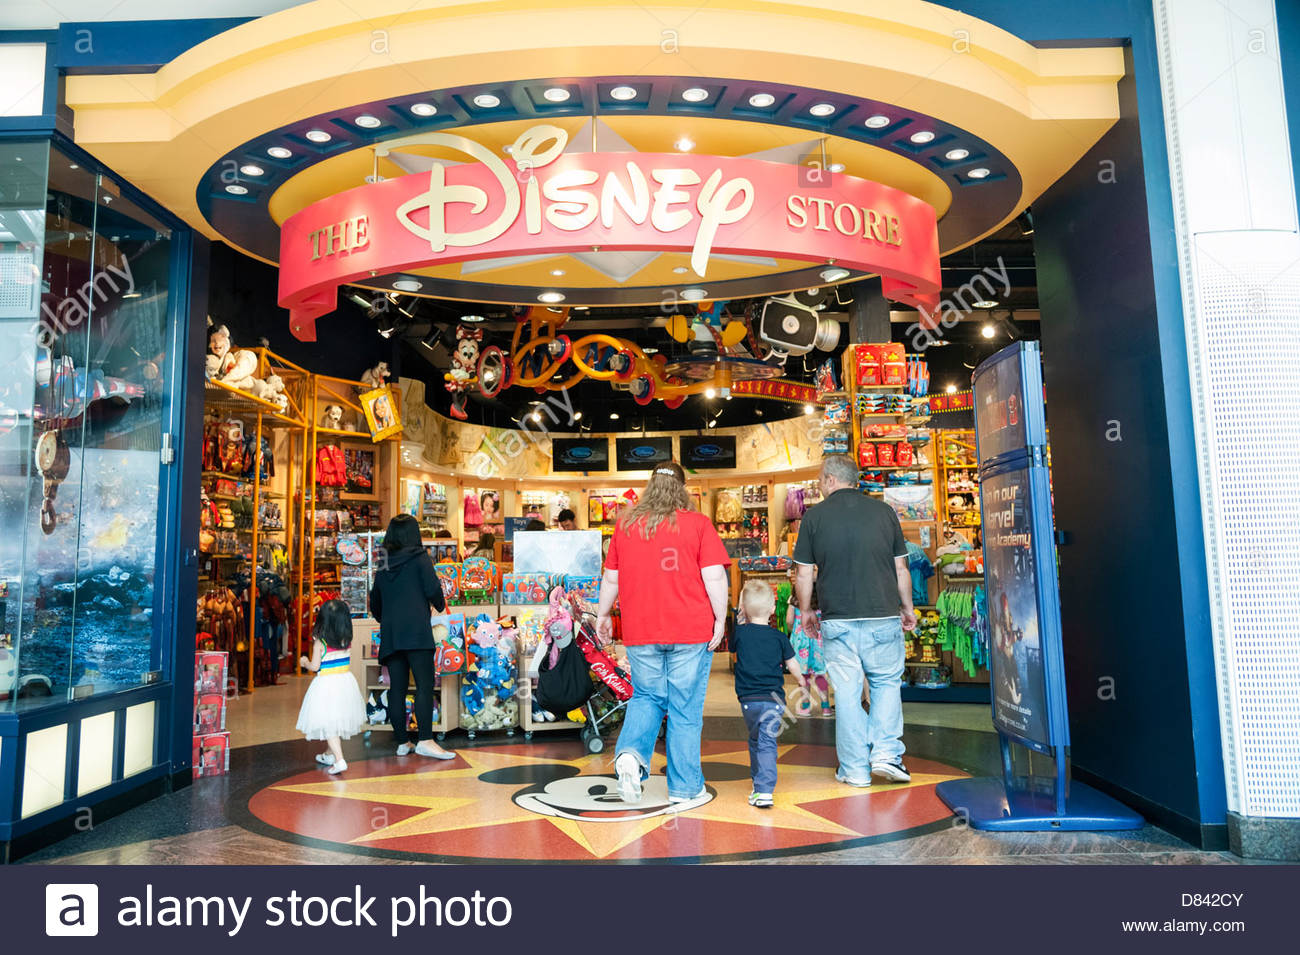 Nov 21,  · Discover all you need to know about Disney movies, live shows, holidays, parks and the latest magical gifts from shopDisney.